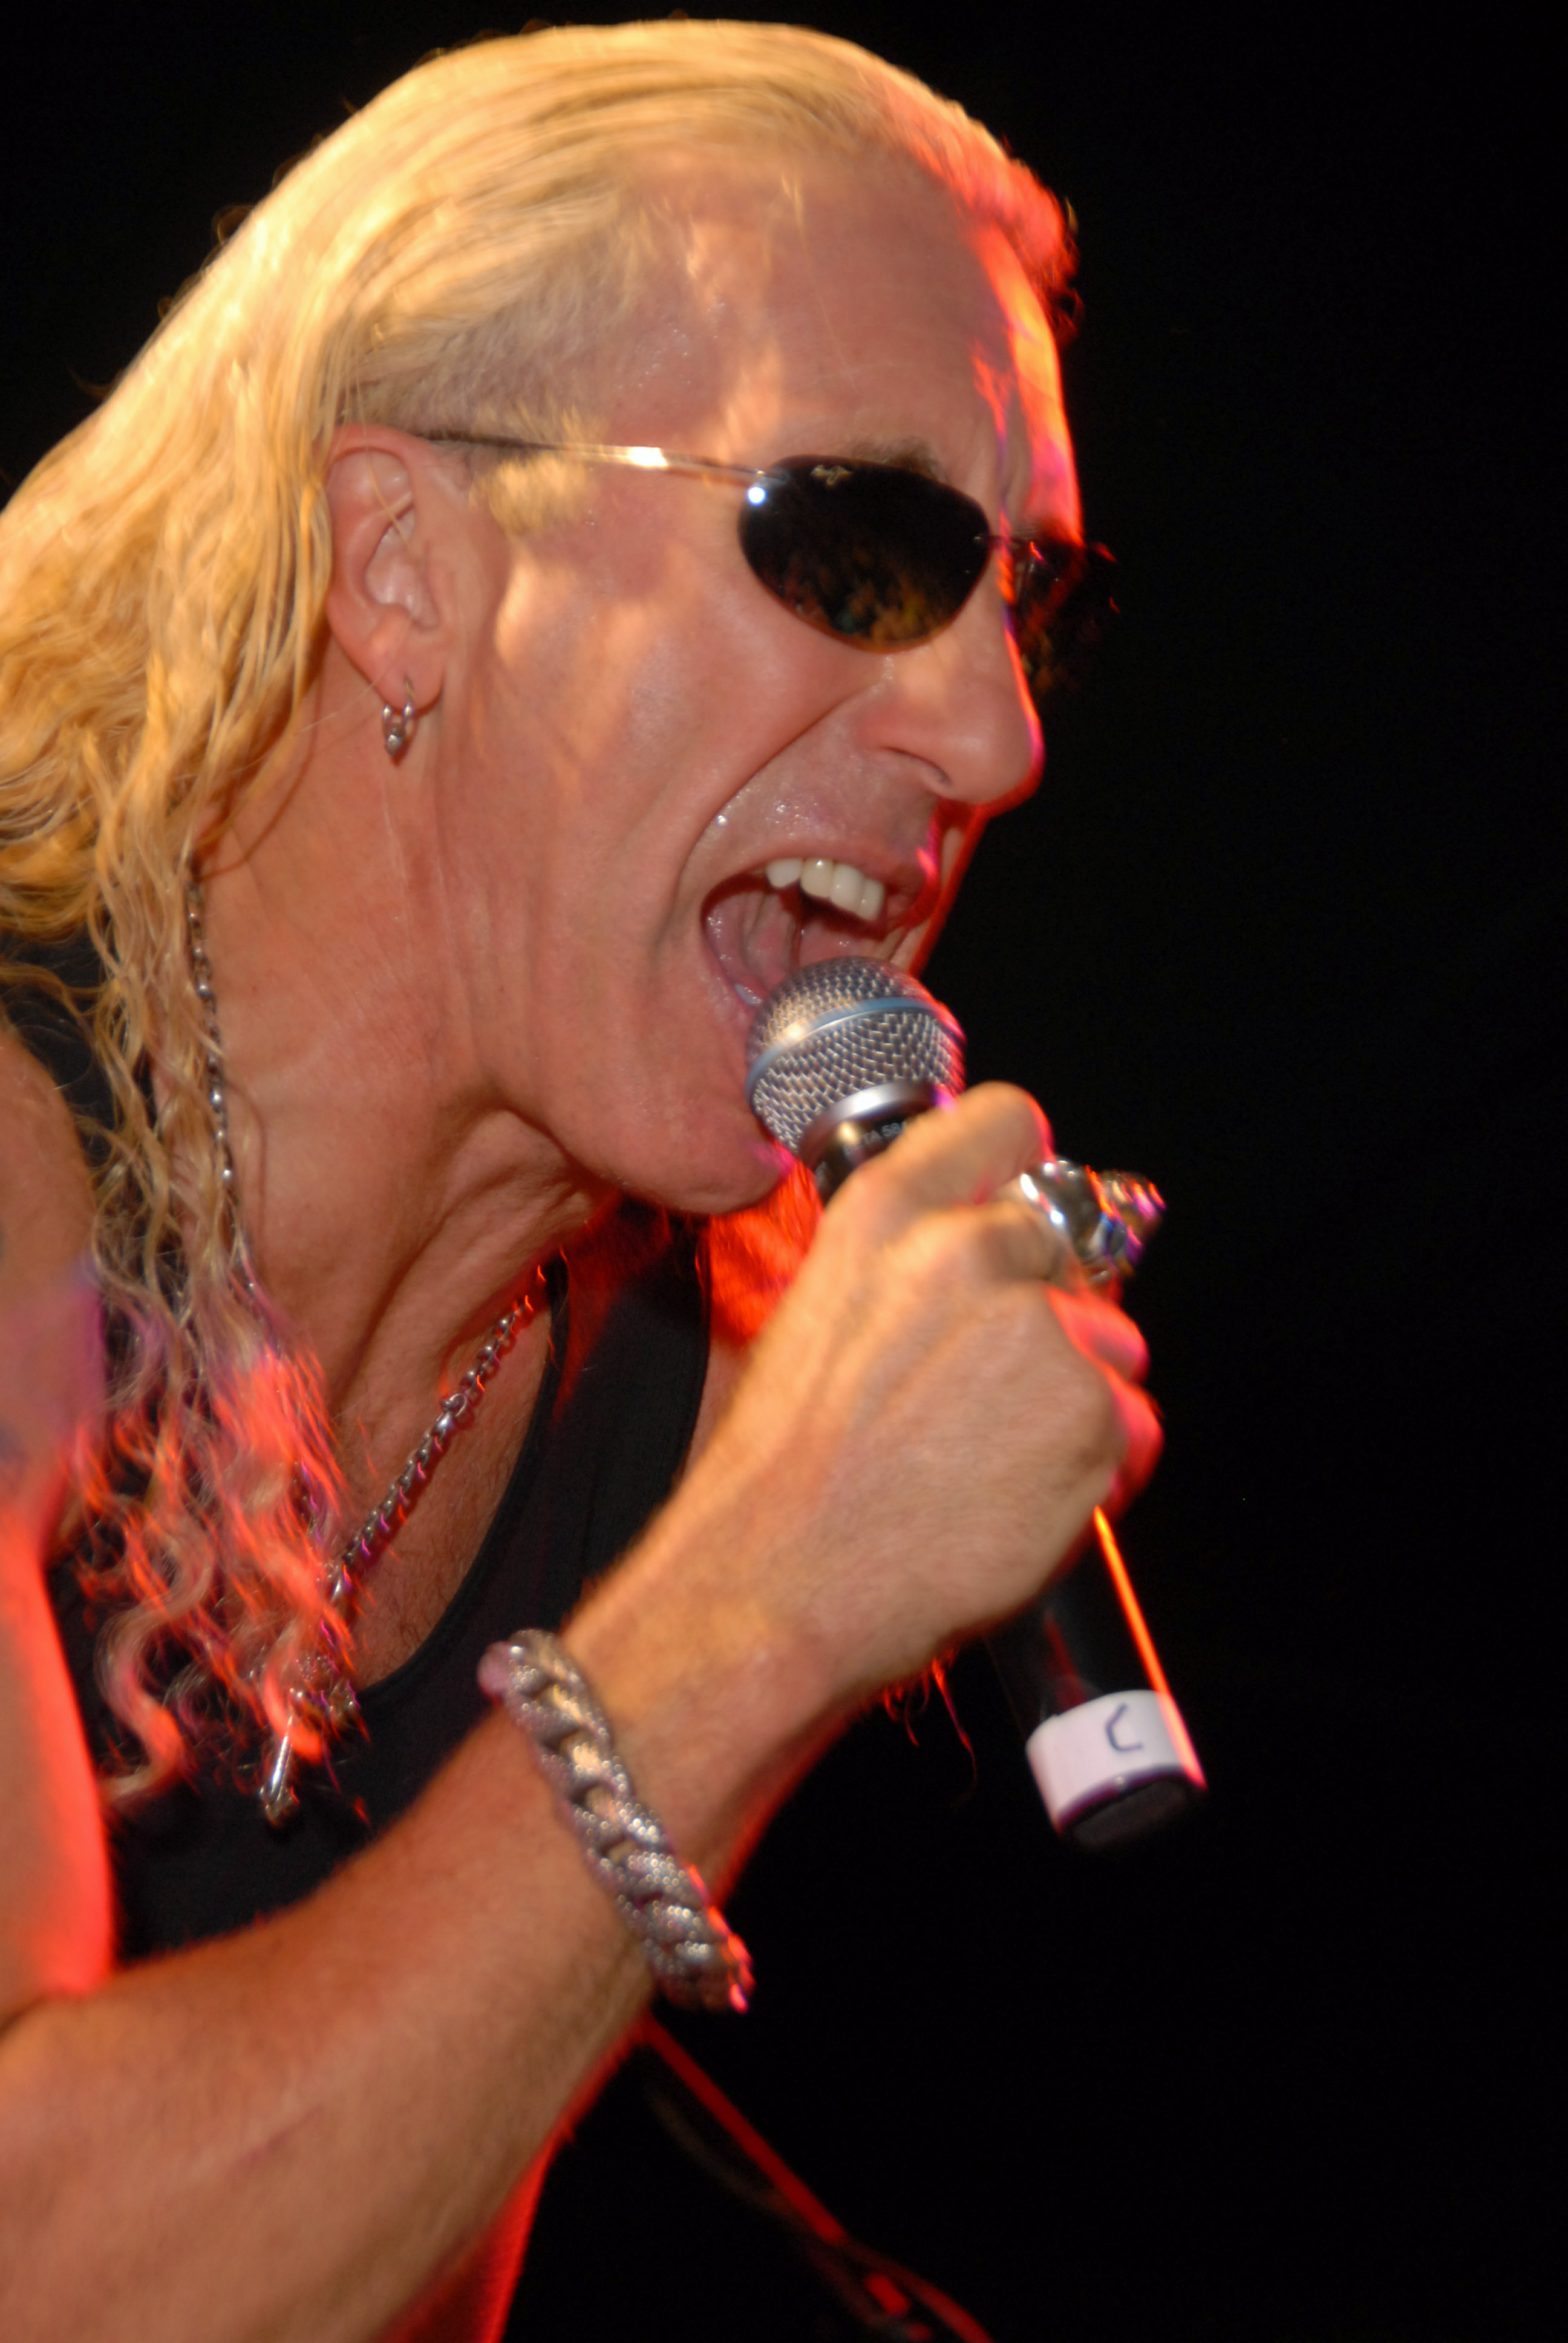 dee snider wifedee snider wife, dee snider movie, dee snider podcast, dee snider height, dee snider house of hair, dee snider donald trump, dee snider howard stern, dee snider twitter, dee snider costume, dee snider net worth, dee snider 2015, dee snider band, dee snider son, dee snider tour, dee snider's strangeland, dee snider vs paul stanley, dee snider images, dee snider teeth, dee snider politics, dee snider makeup